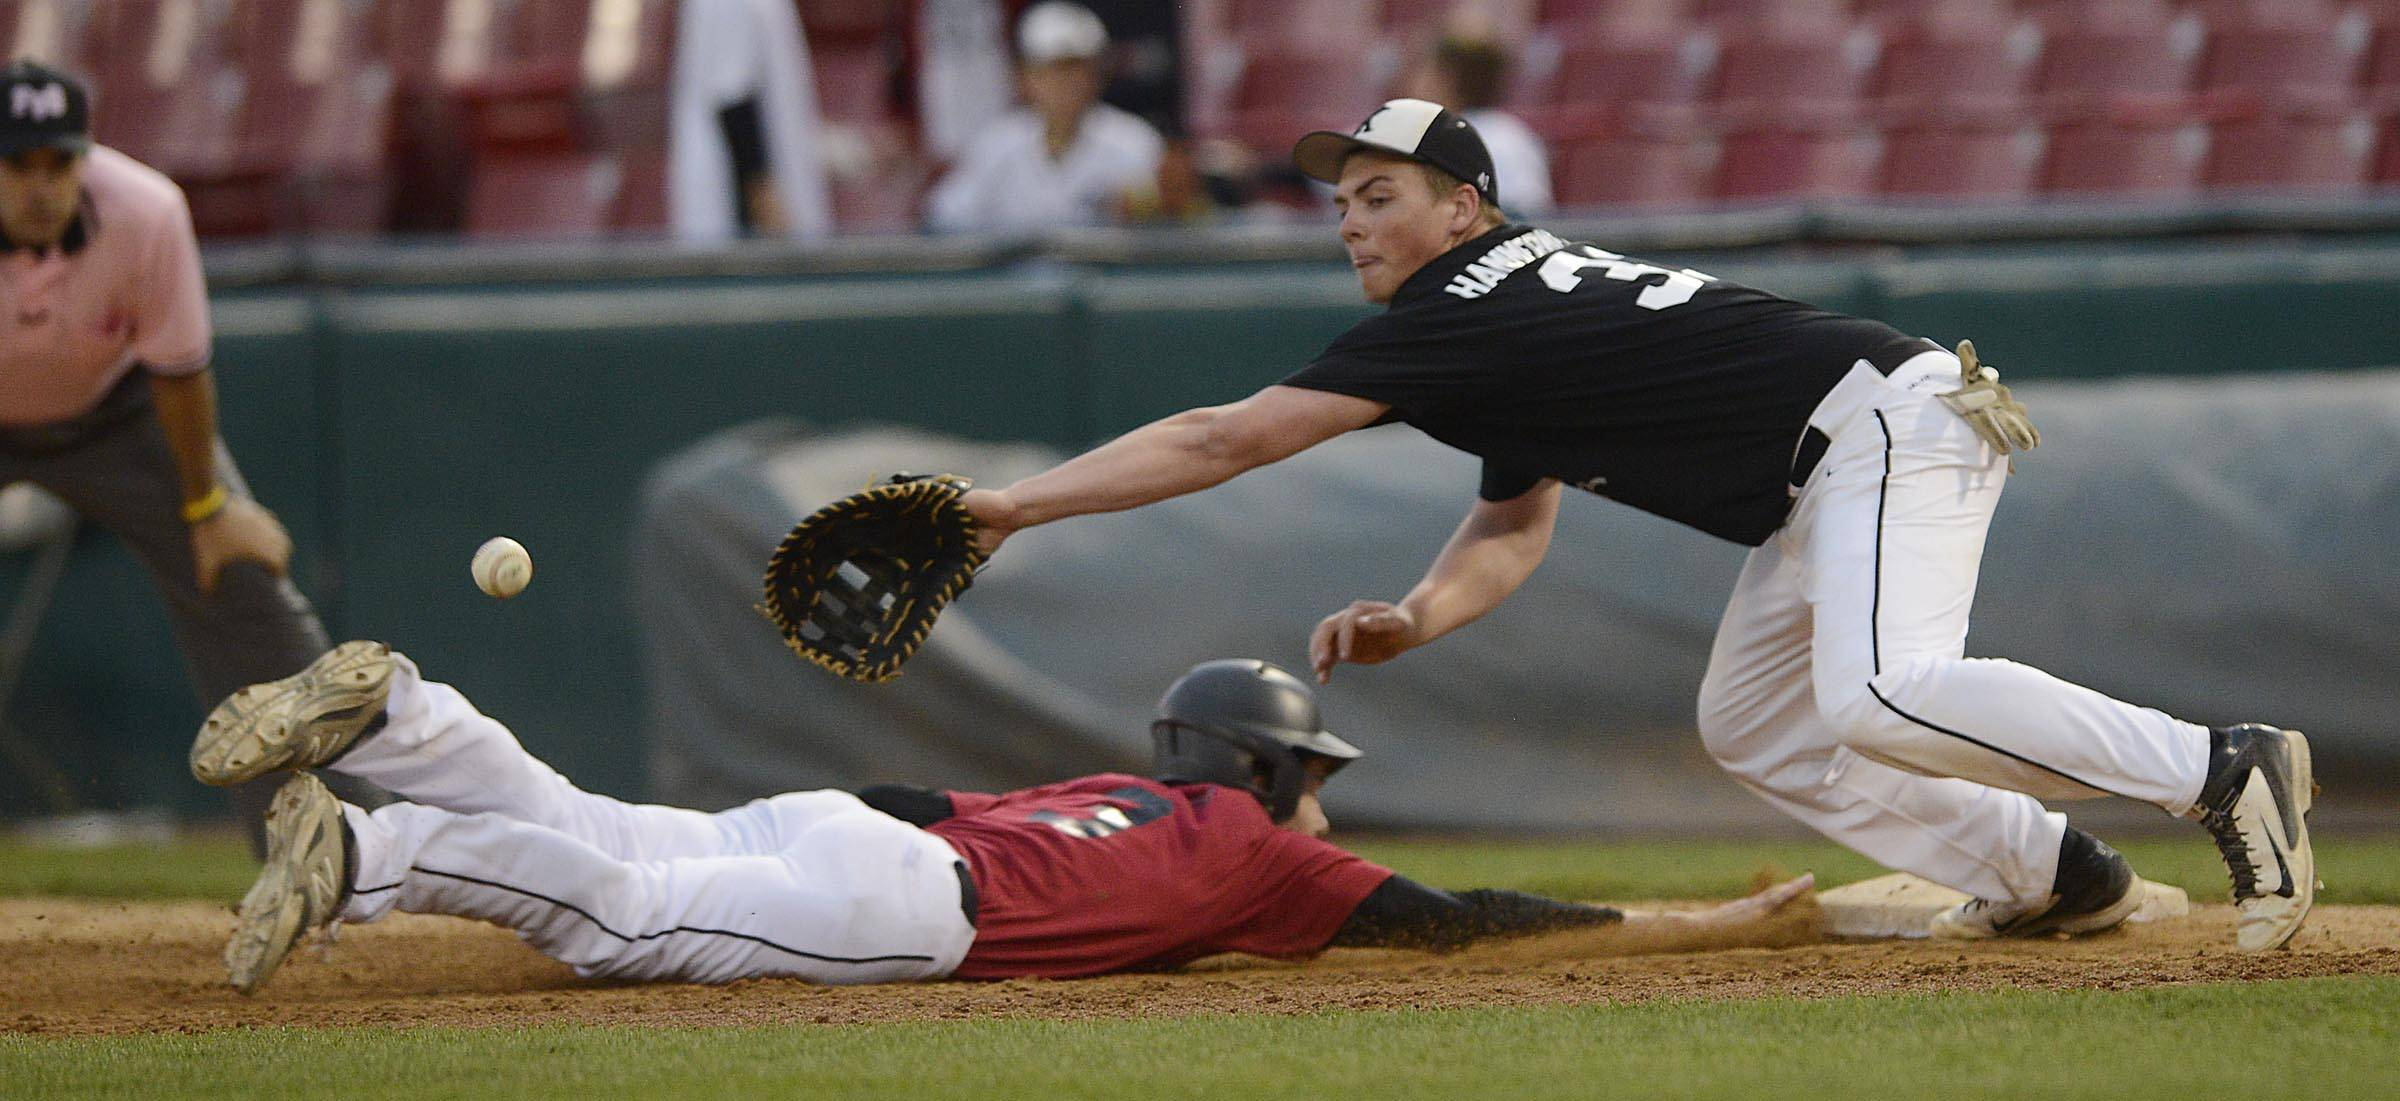 Batavia's Willie Firth dives safely back to first base as Kaneland's Danny Hammermeister dives for the throw Monday.